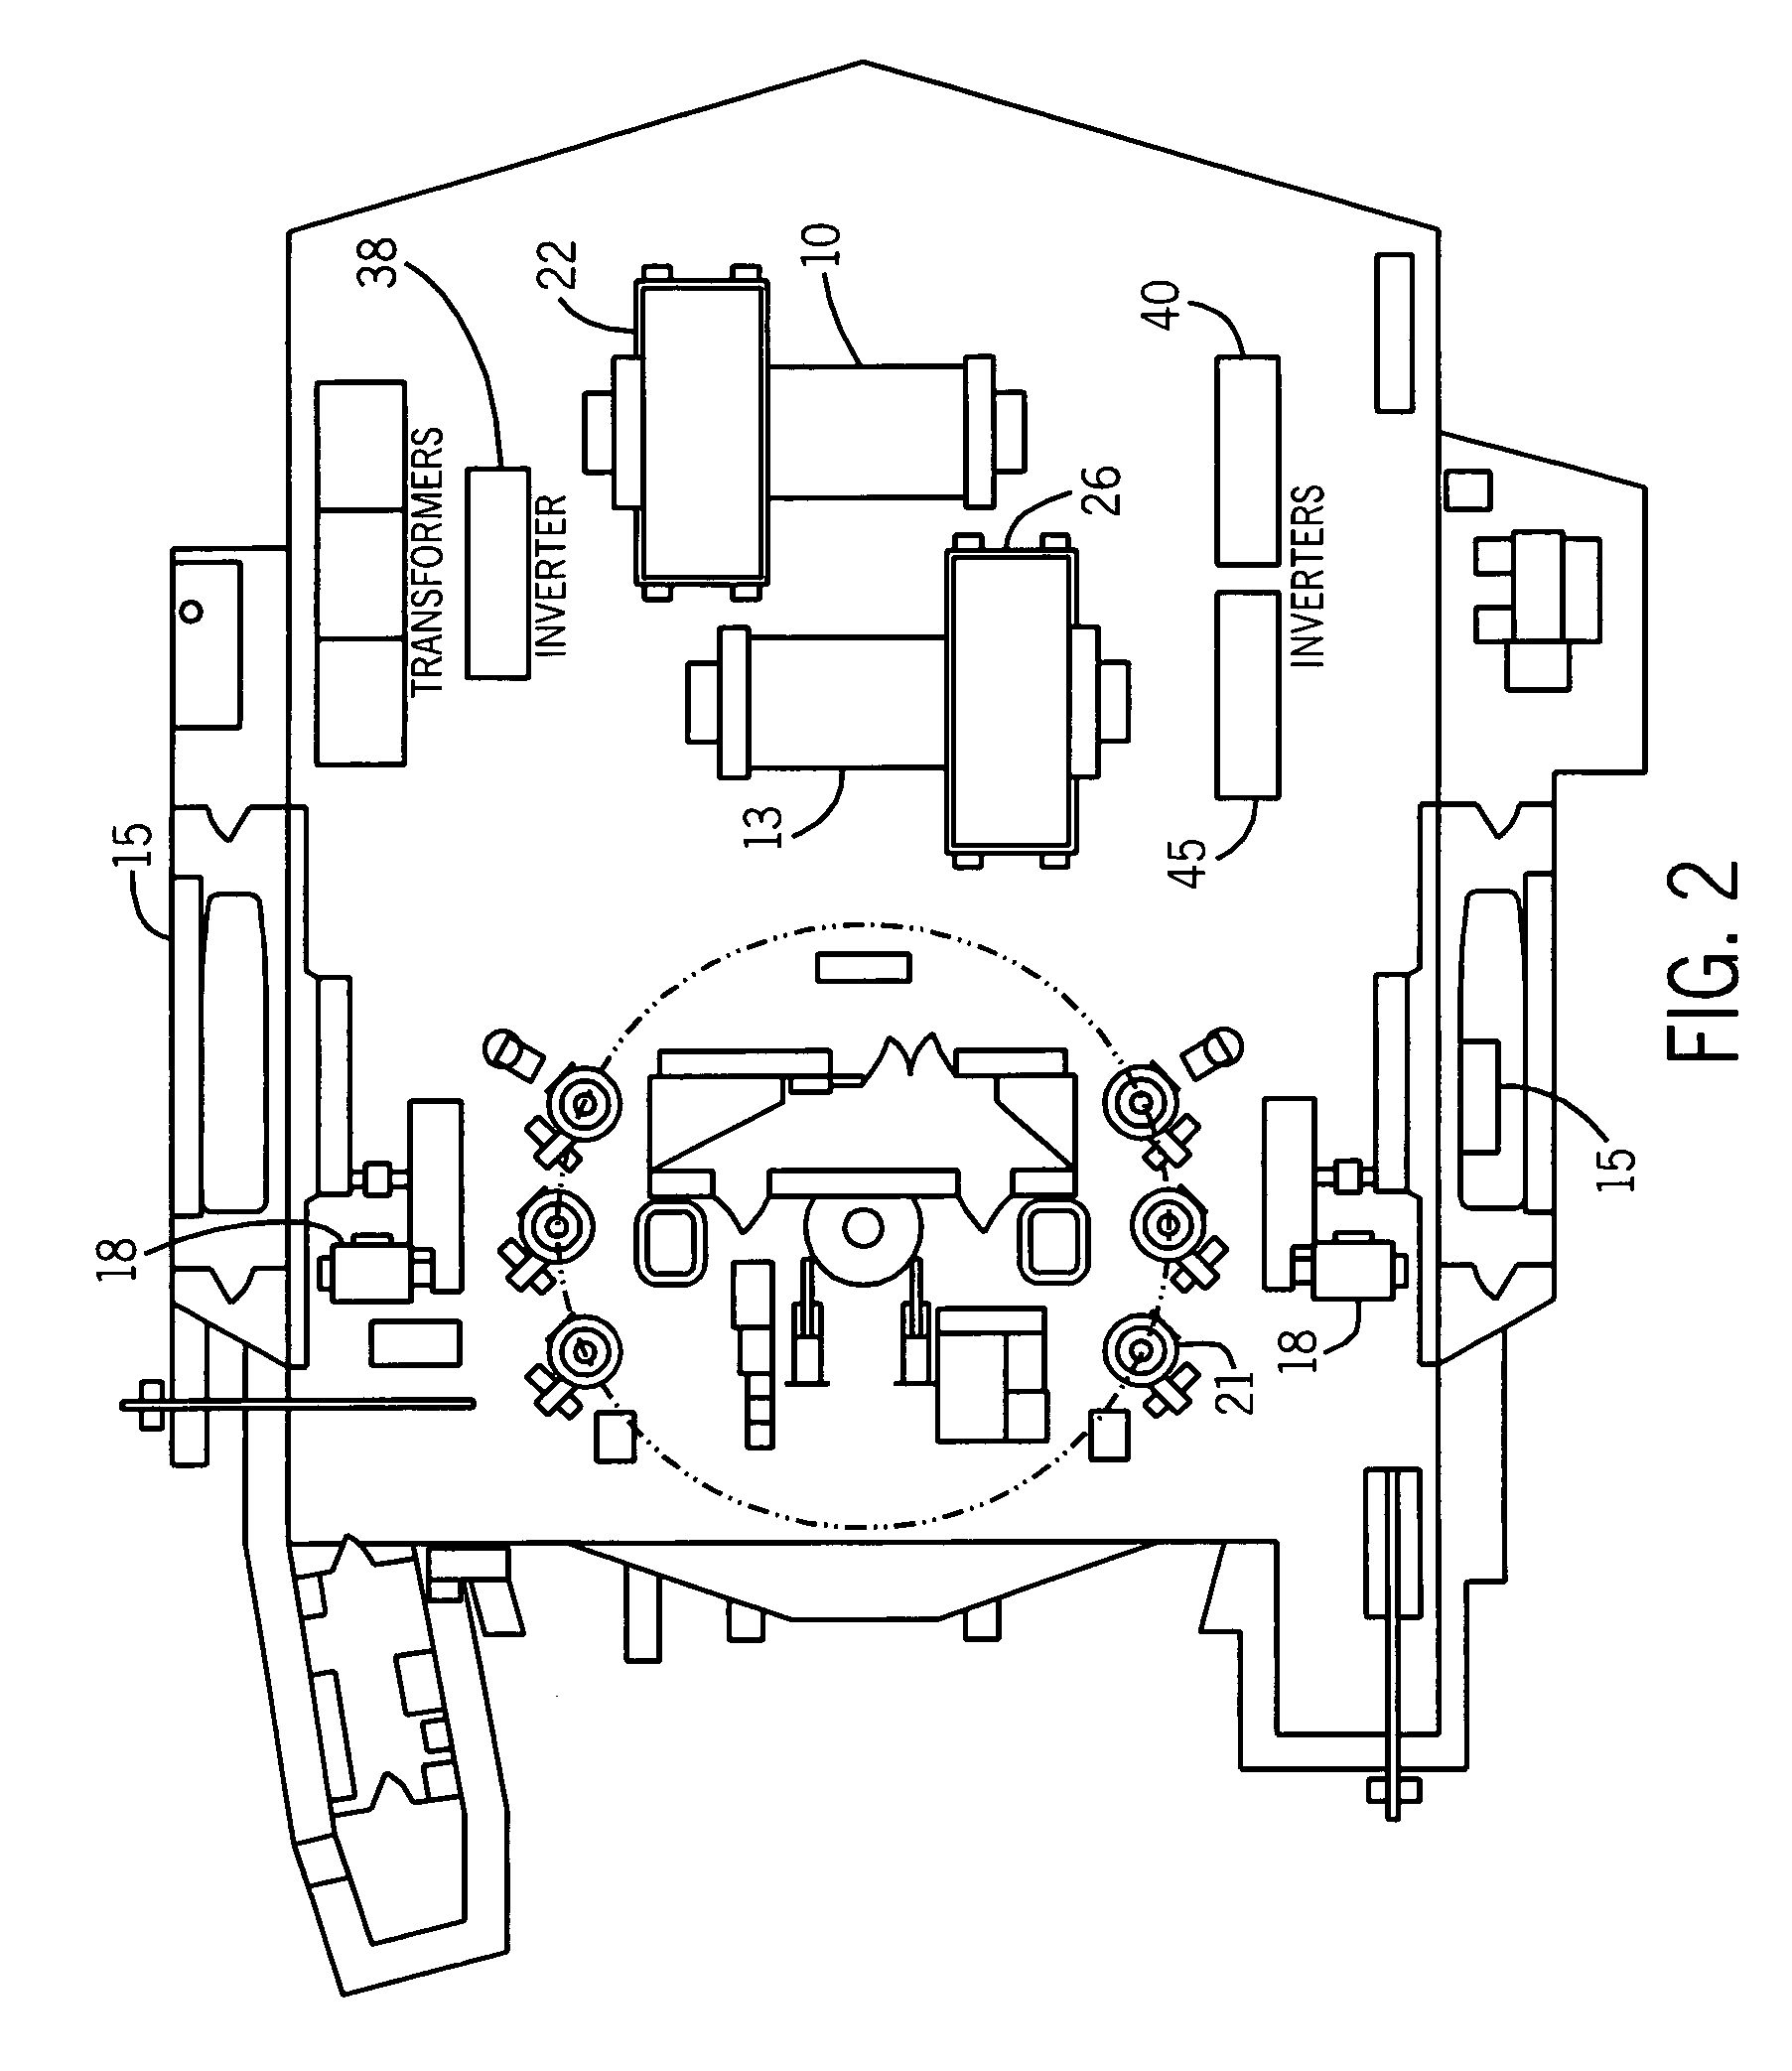 Dragline Drag Dc Motor Wiring Diagram Basic Guide Free Download Schematic Patent Us7024805 Excavating Machine With Direct Simple